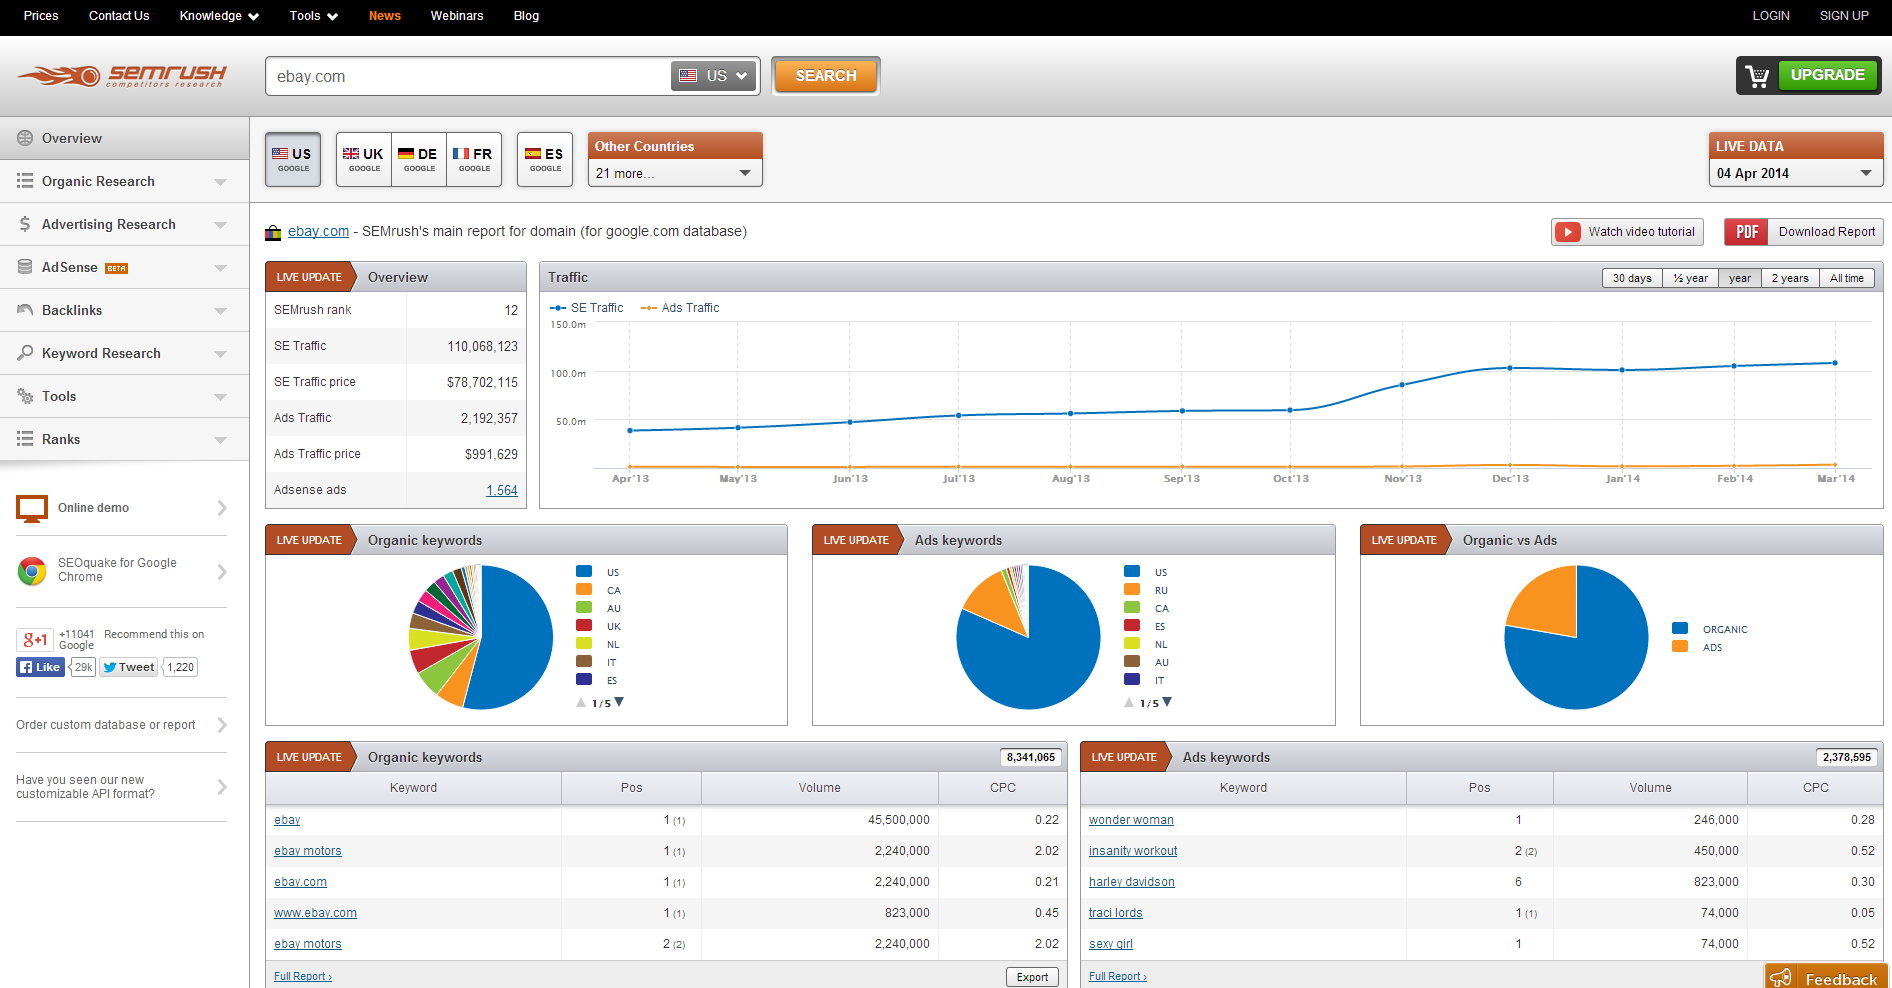 semrush-screenshot1